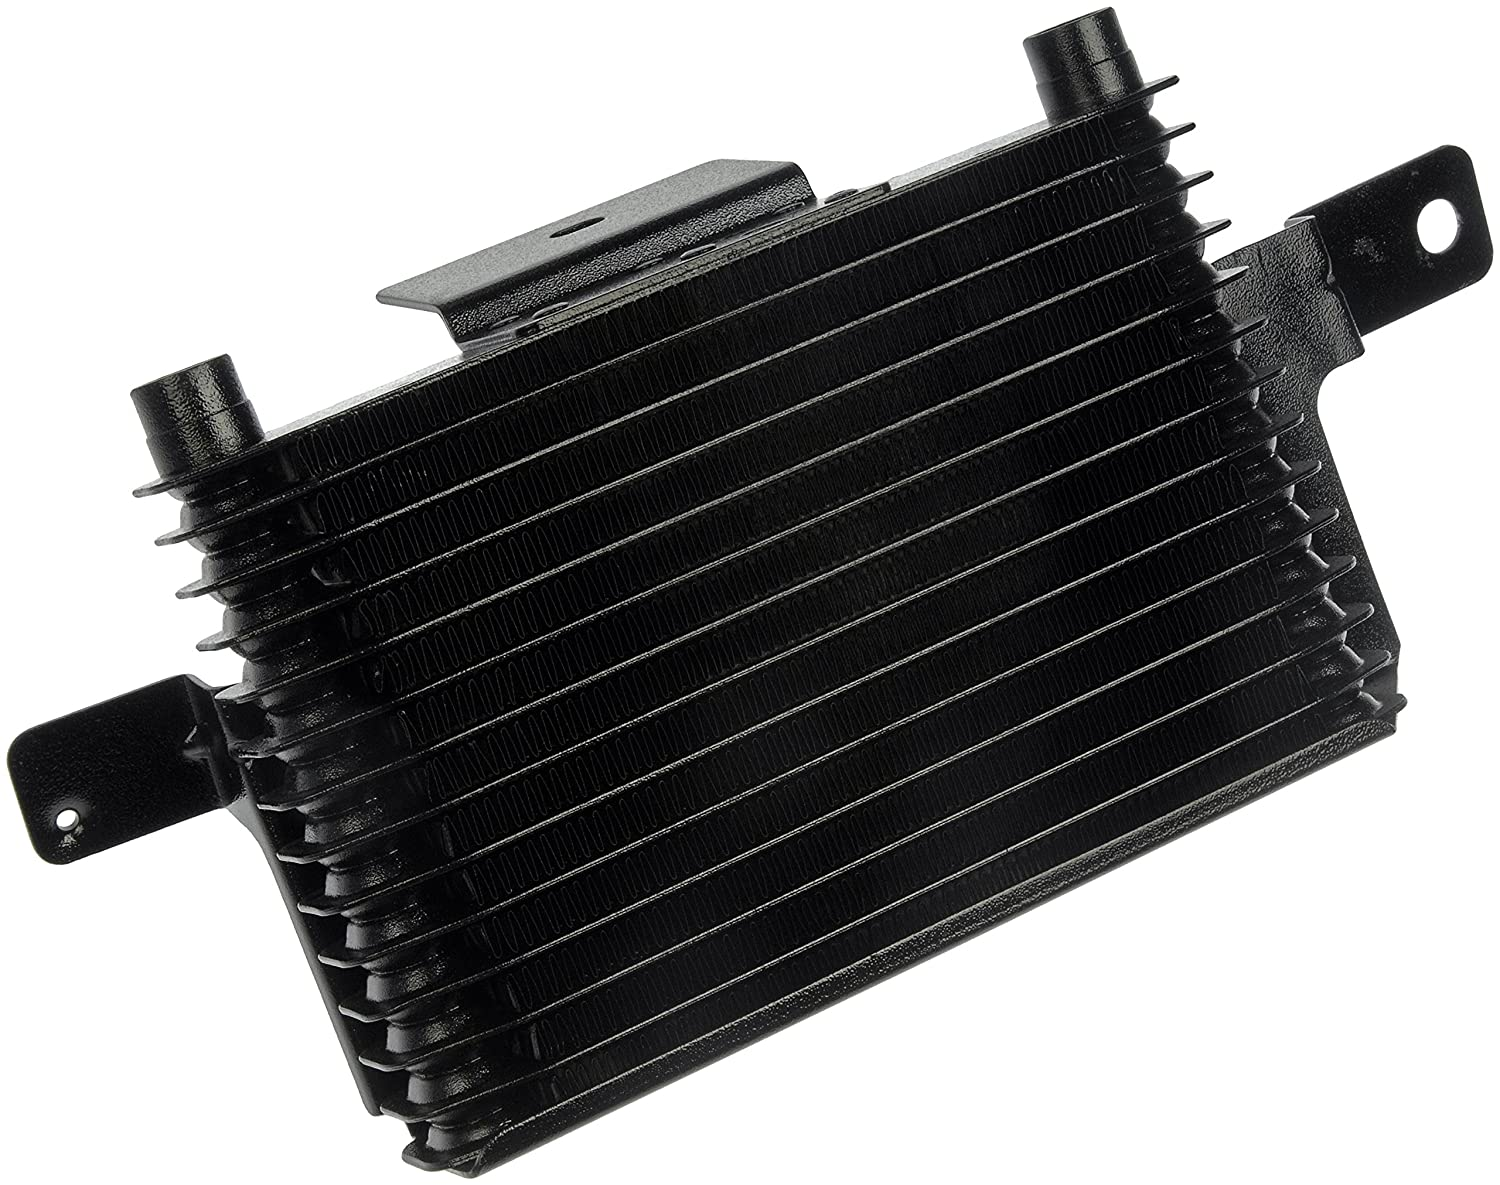 Dorman 918-212 Transmission Oil Cooler